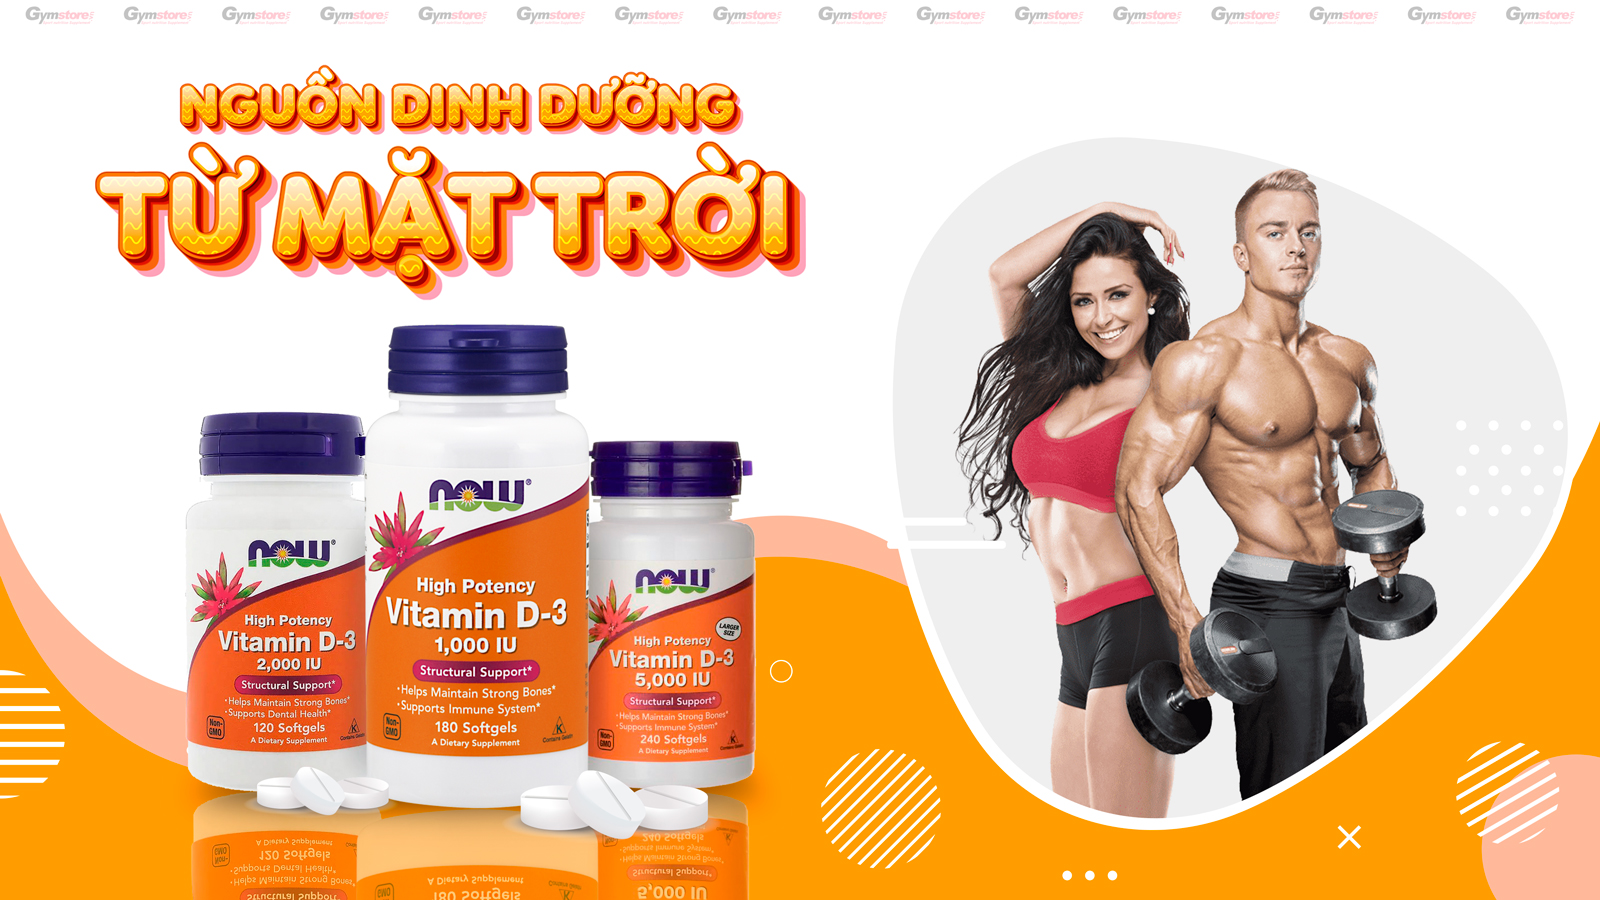 NOW-Vitamin-D3-bổ-sung-vitamin-gymstore